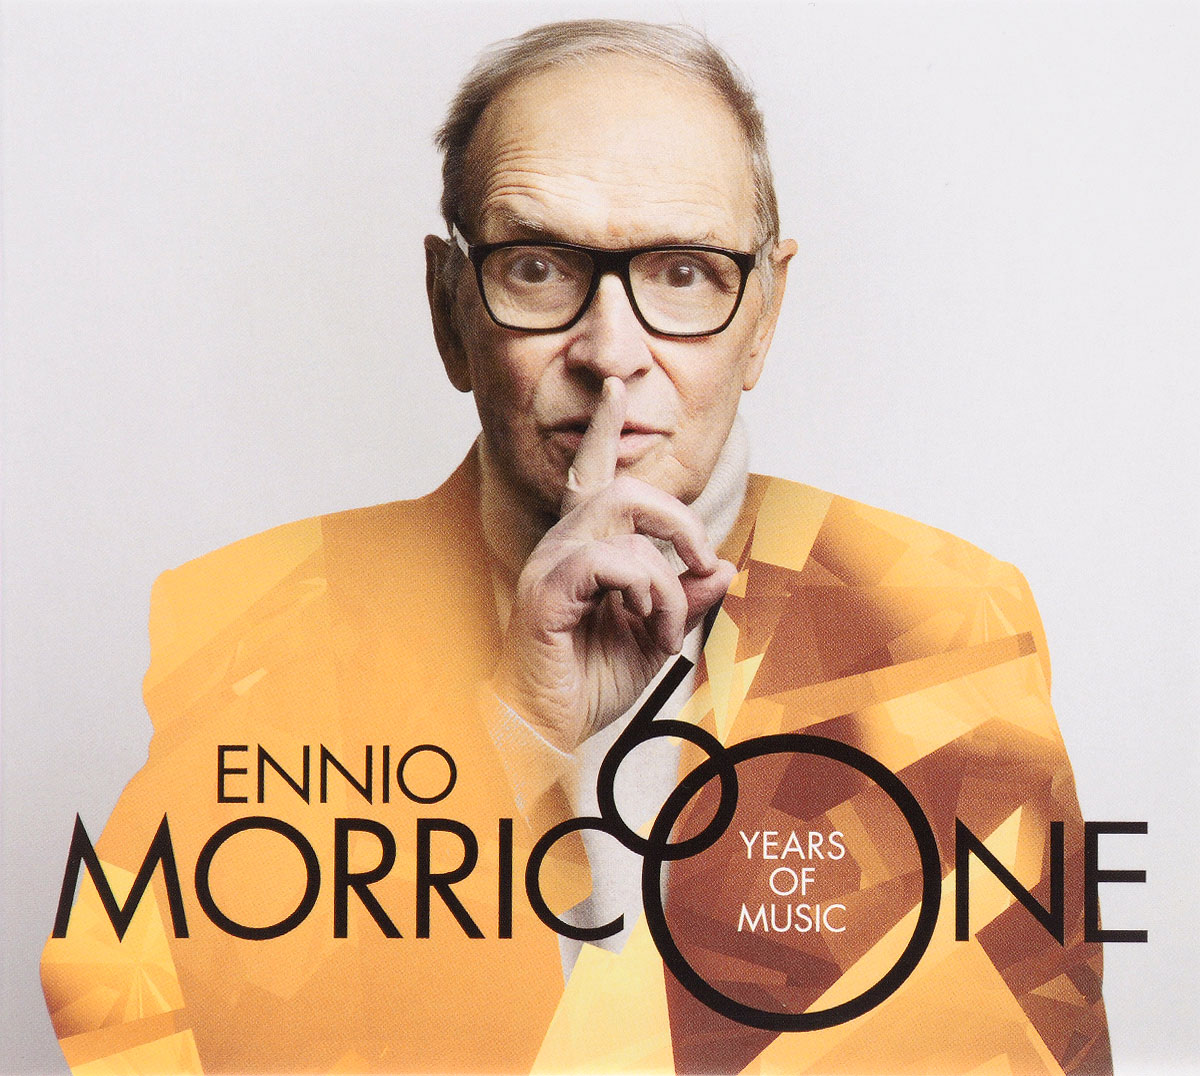 Ennio Morricone. Morricone 60 Years Of Music